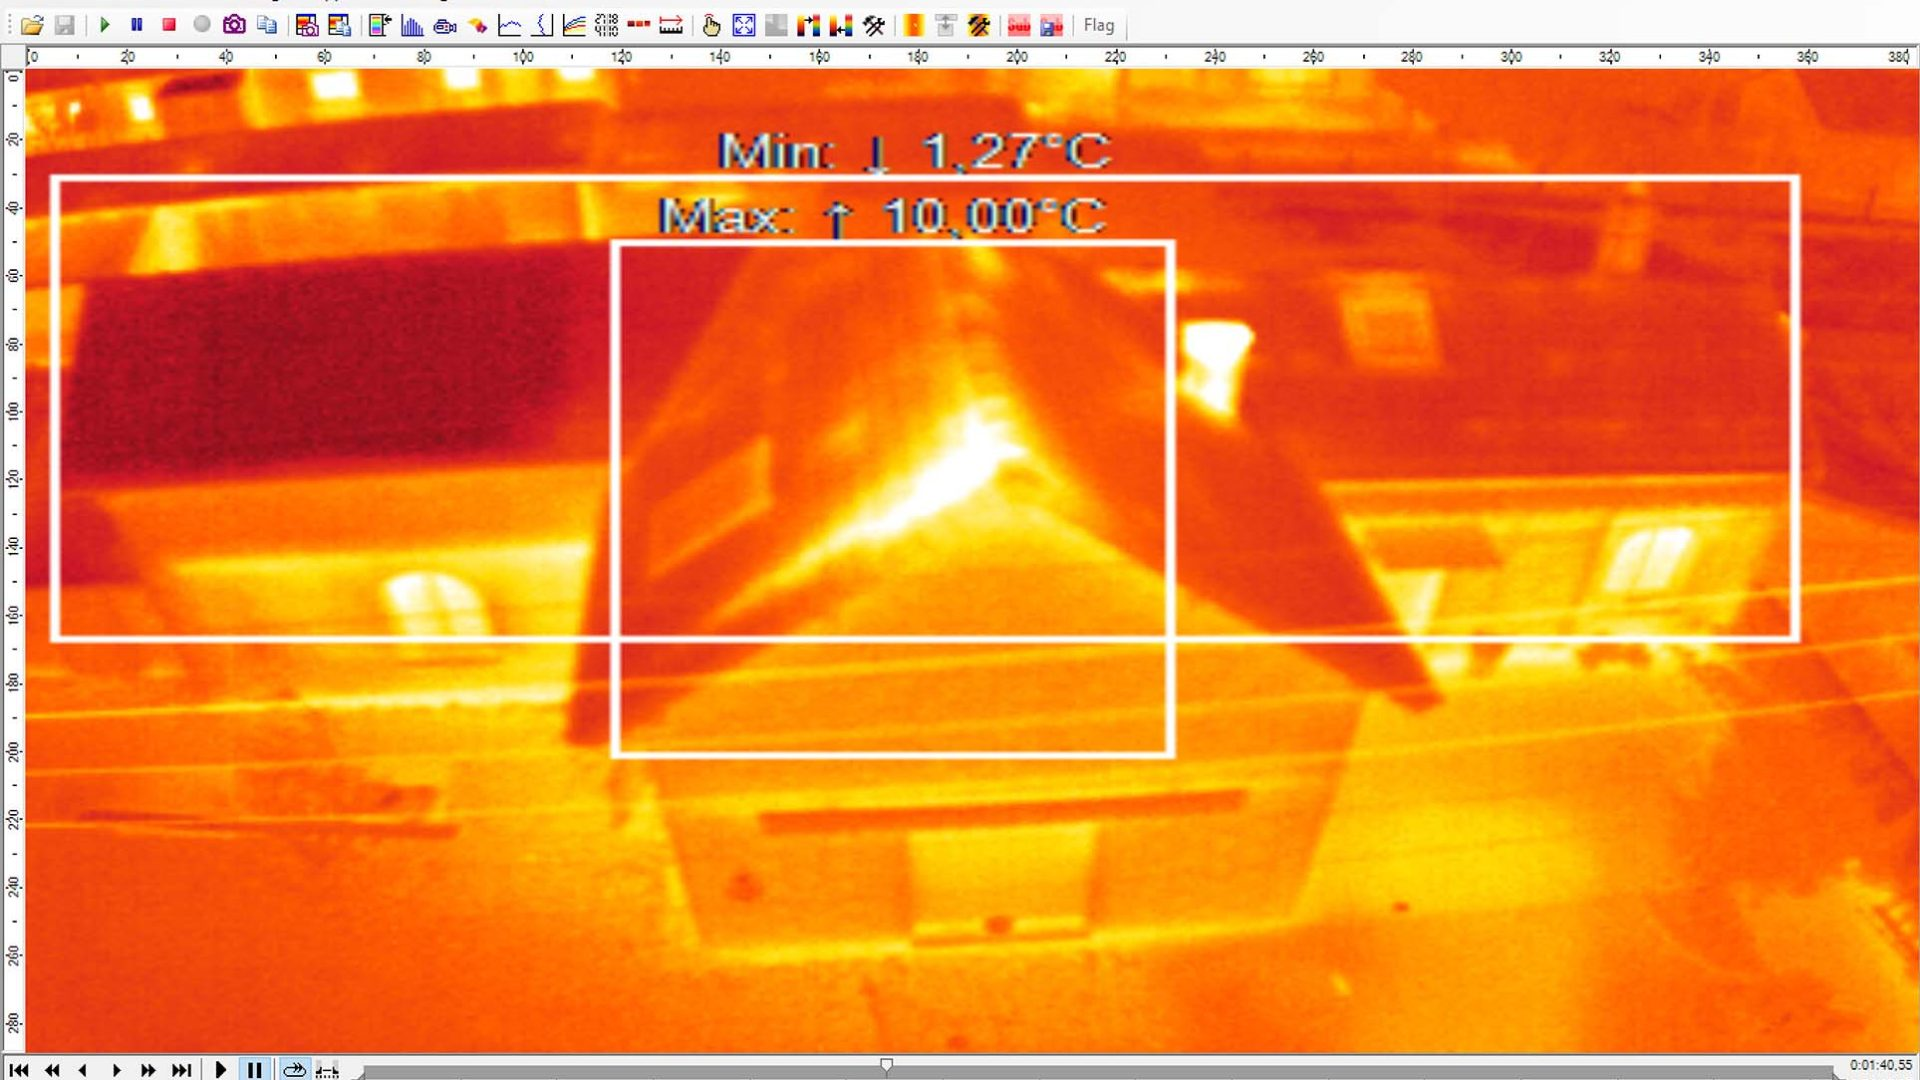 Détection infrarouge, Thermographie